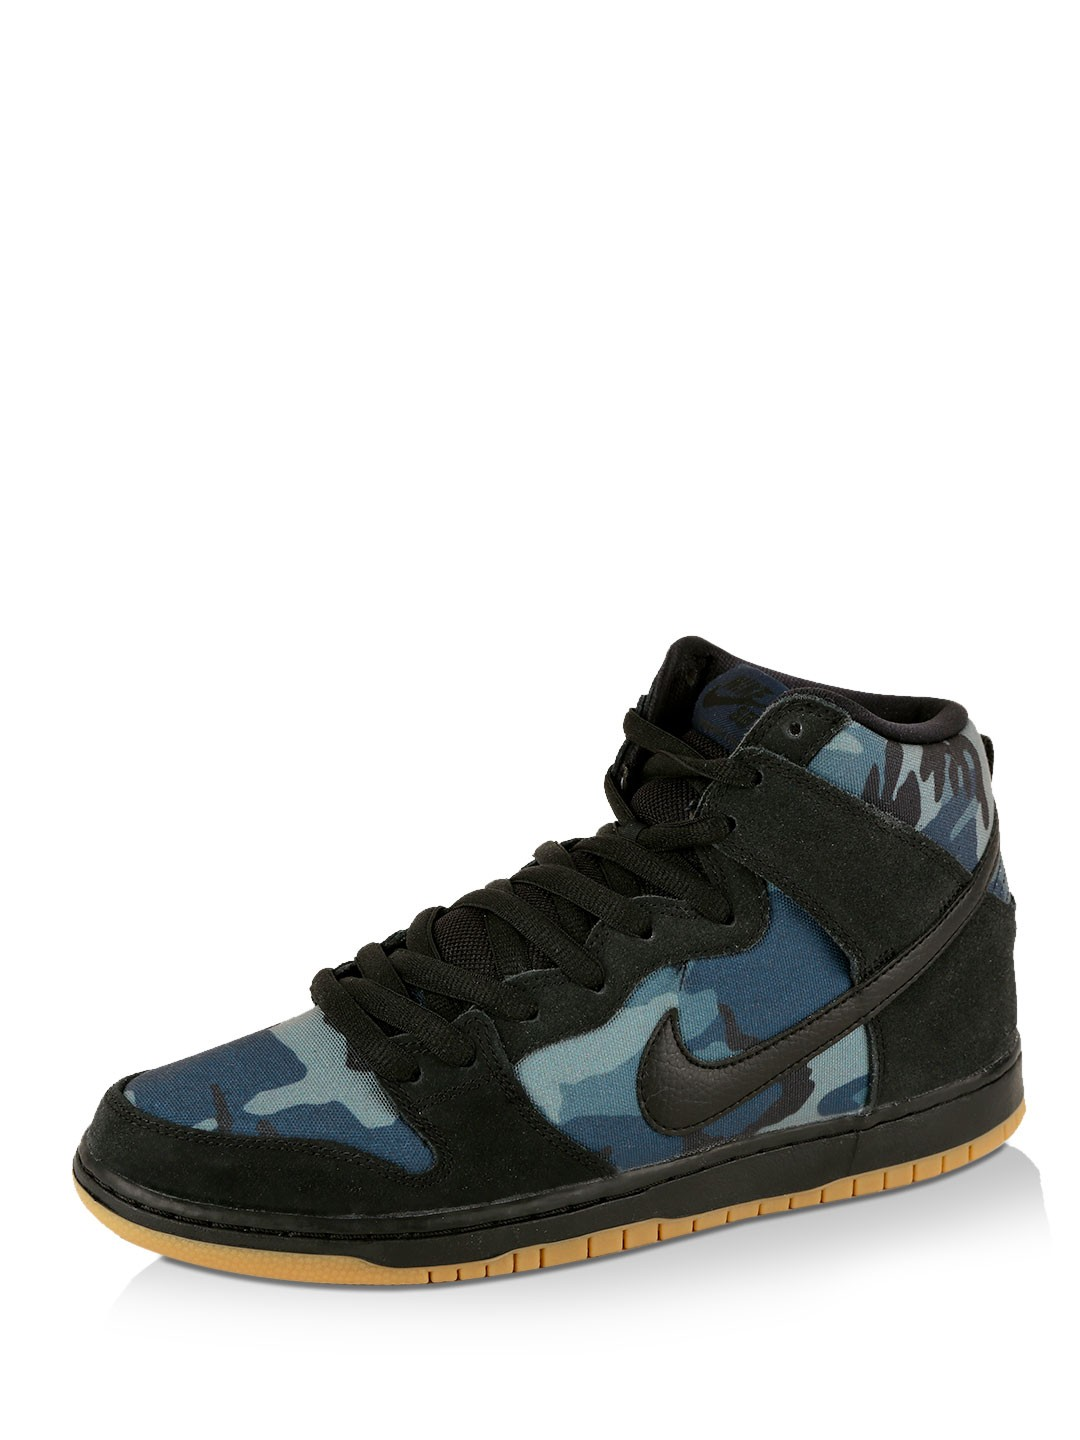 nike dunk high shoes buy india national milk producers